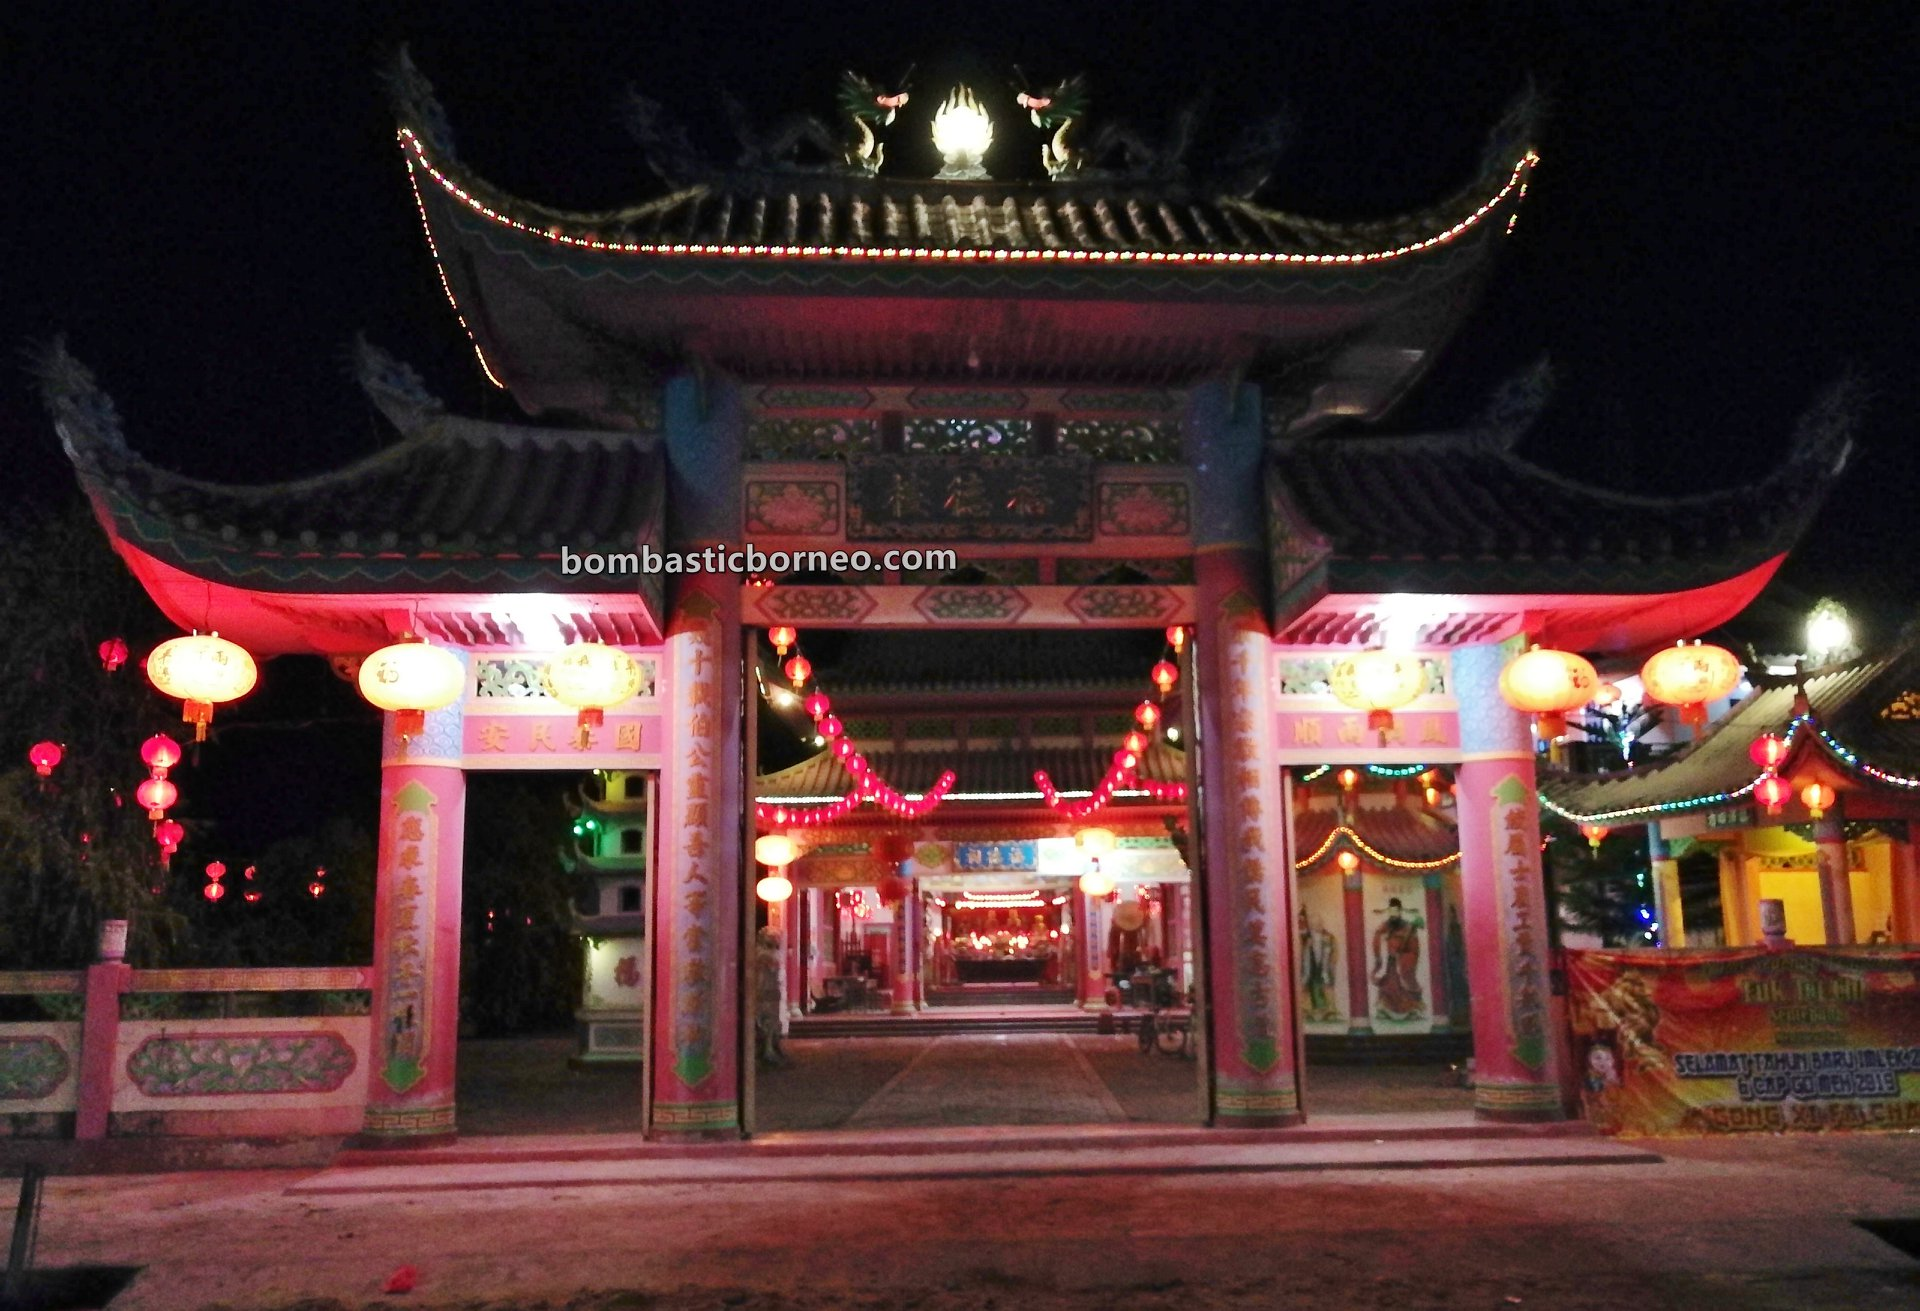 temple, Tahun Baru Imlek, Chinese New Year, traditional, village, culture, Kampung Cina, Sambas, Indonesia, West Kalimantan, Jawai Selatan, Sentebang, Tourism, travel guide, Borneo,